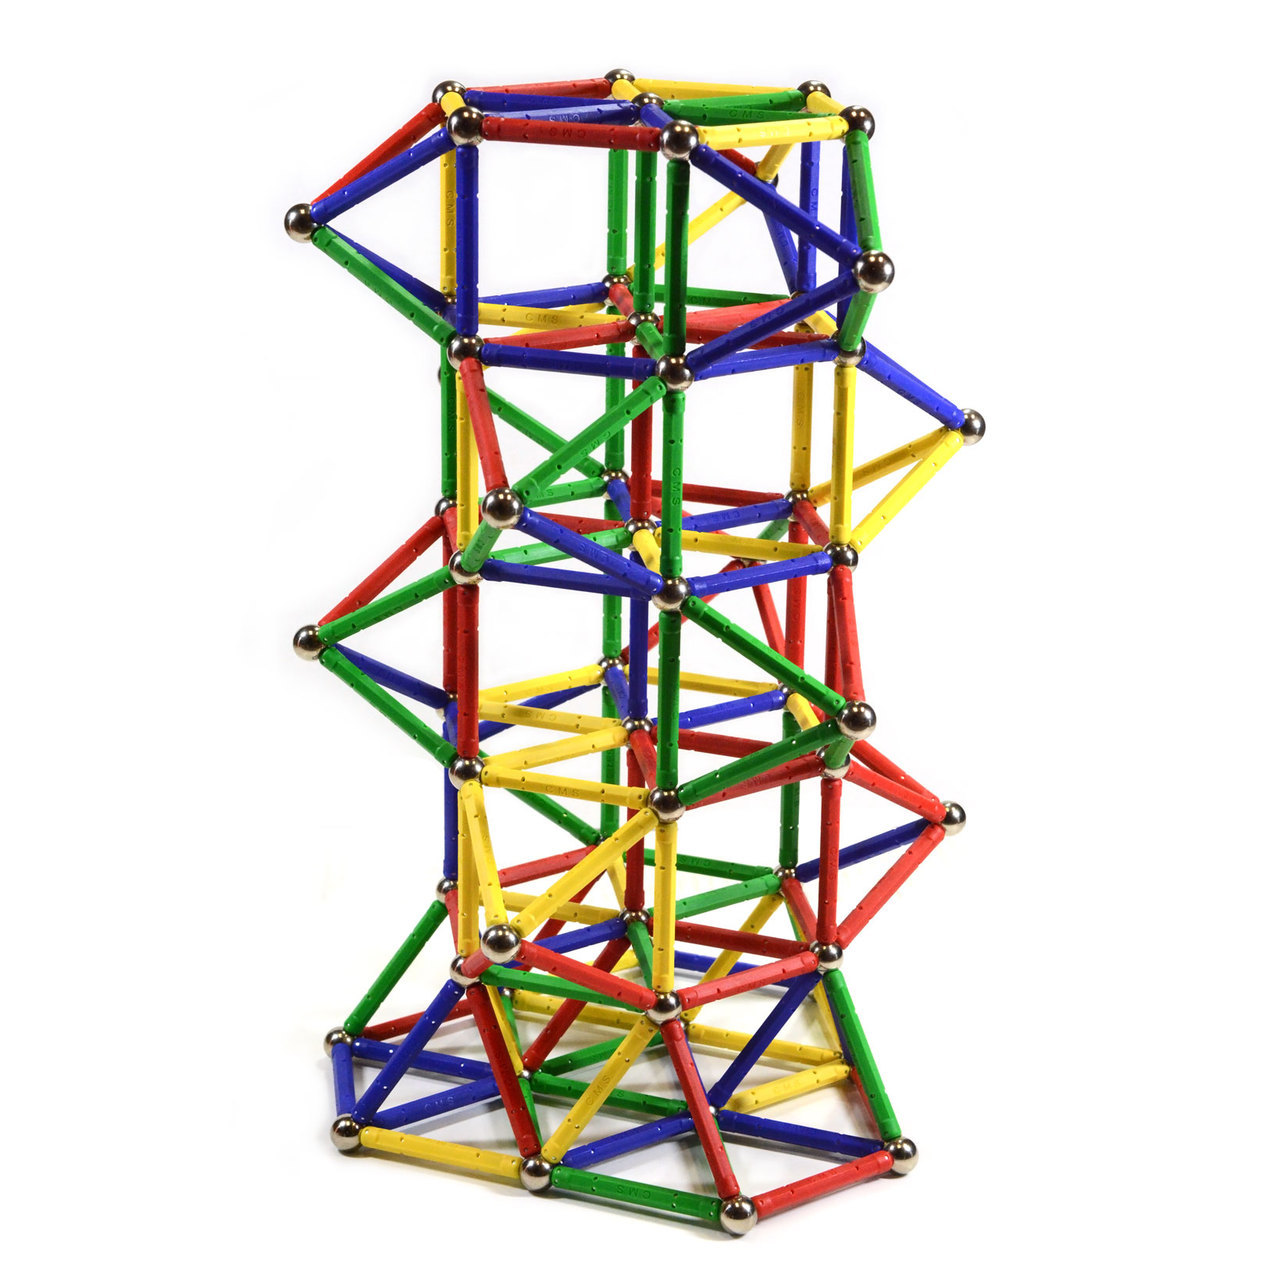 magnetic-building-toy.jpg